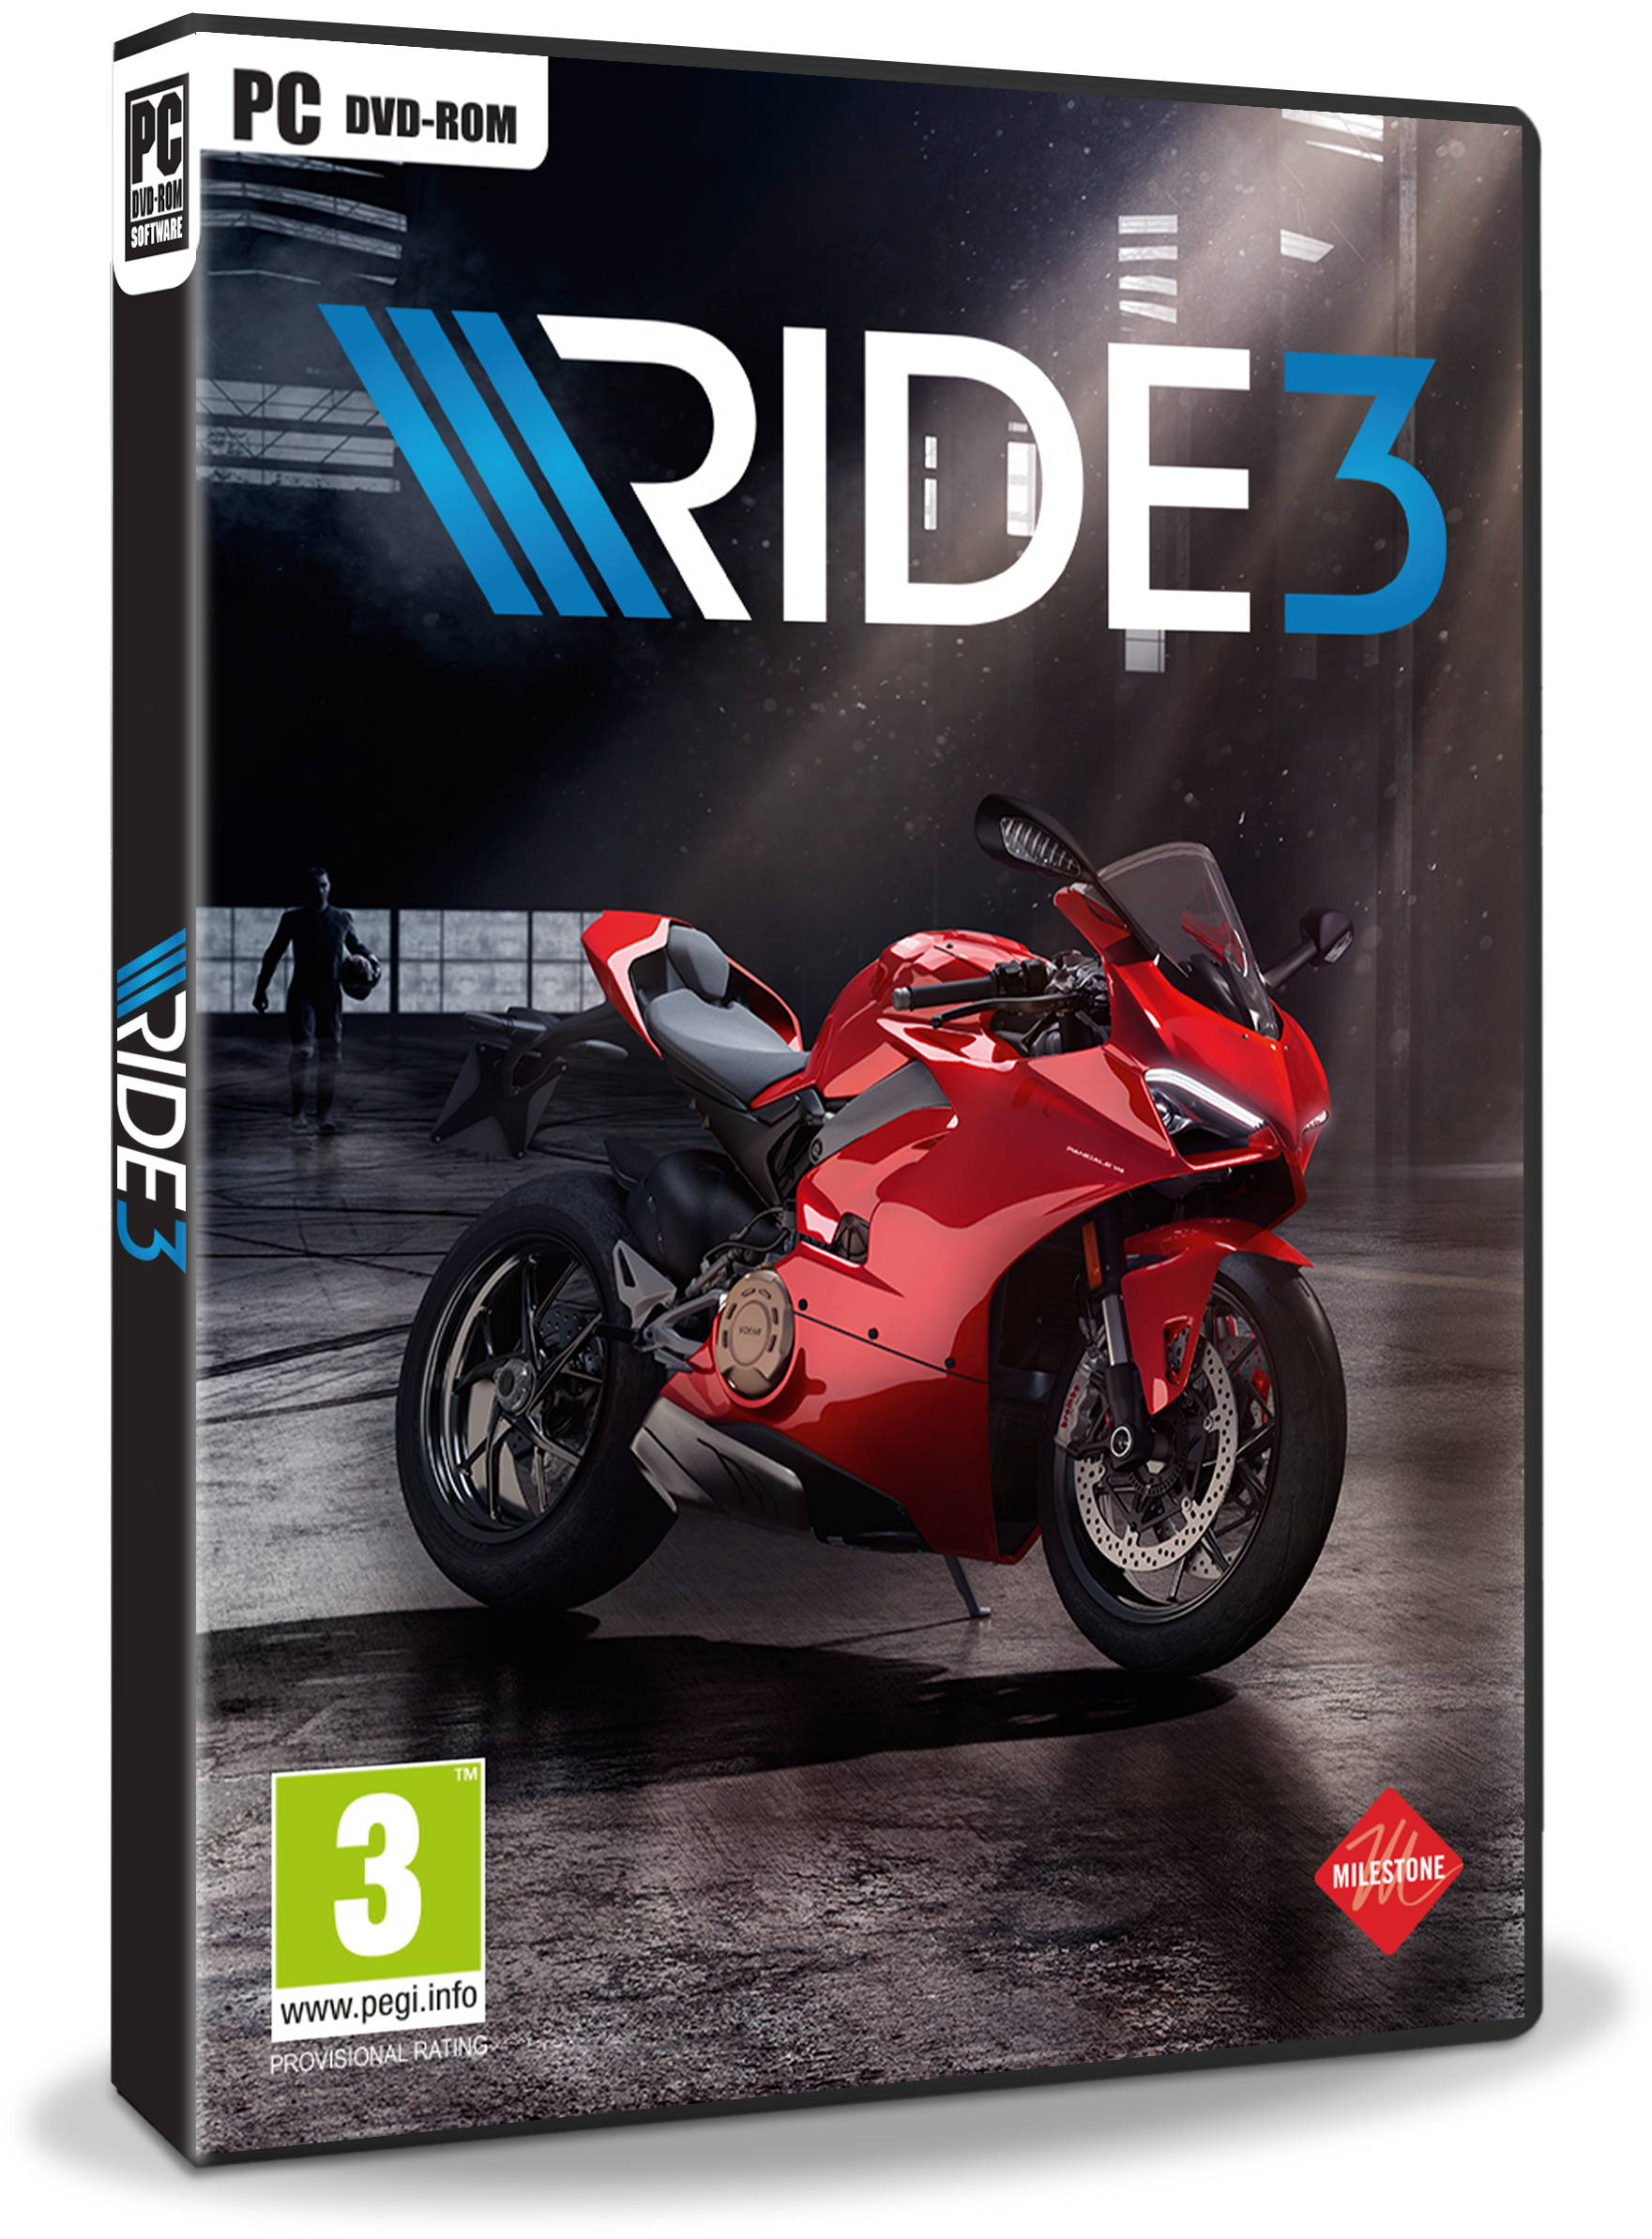 ride3_images_0001